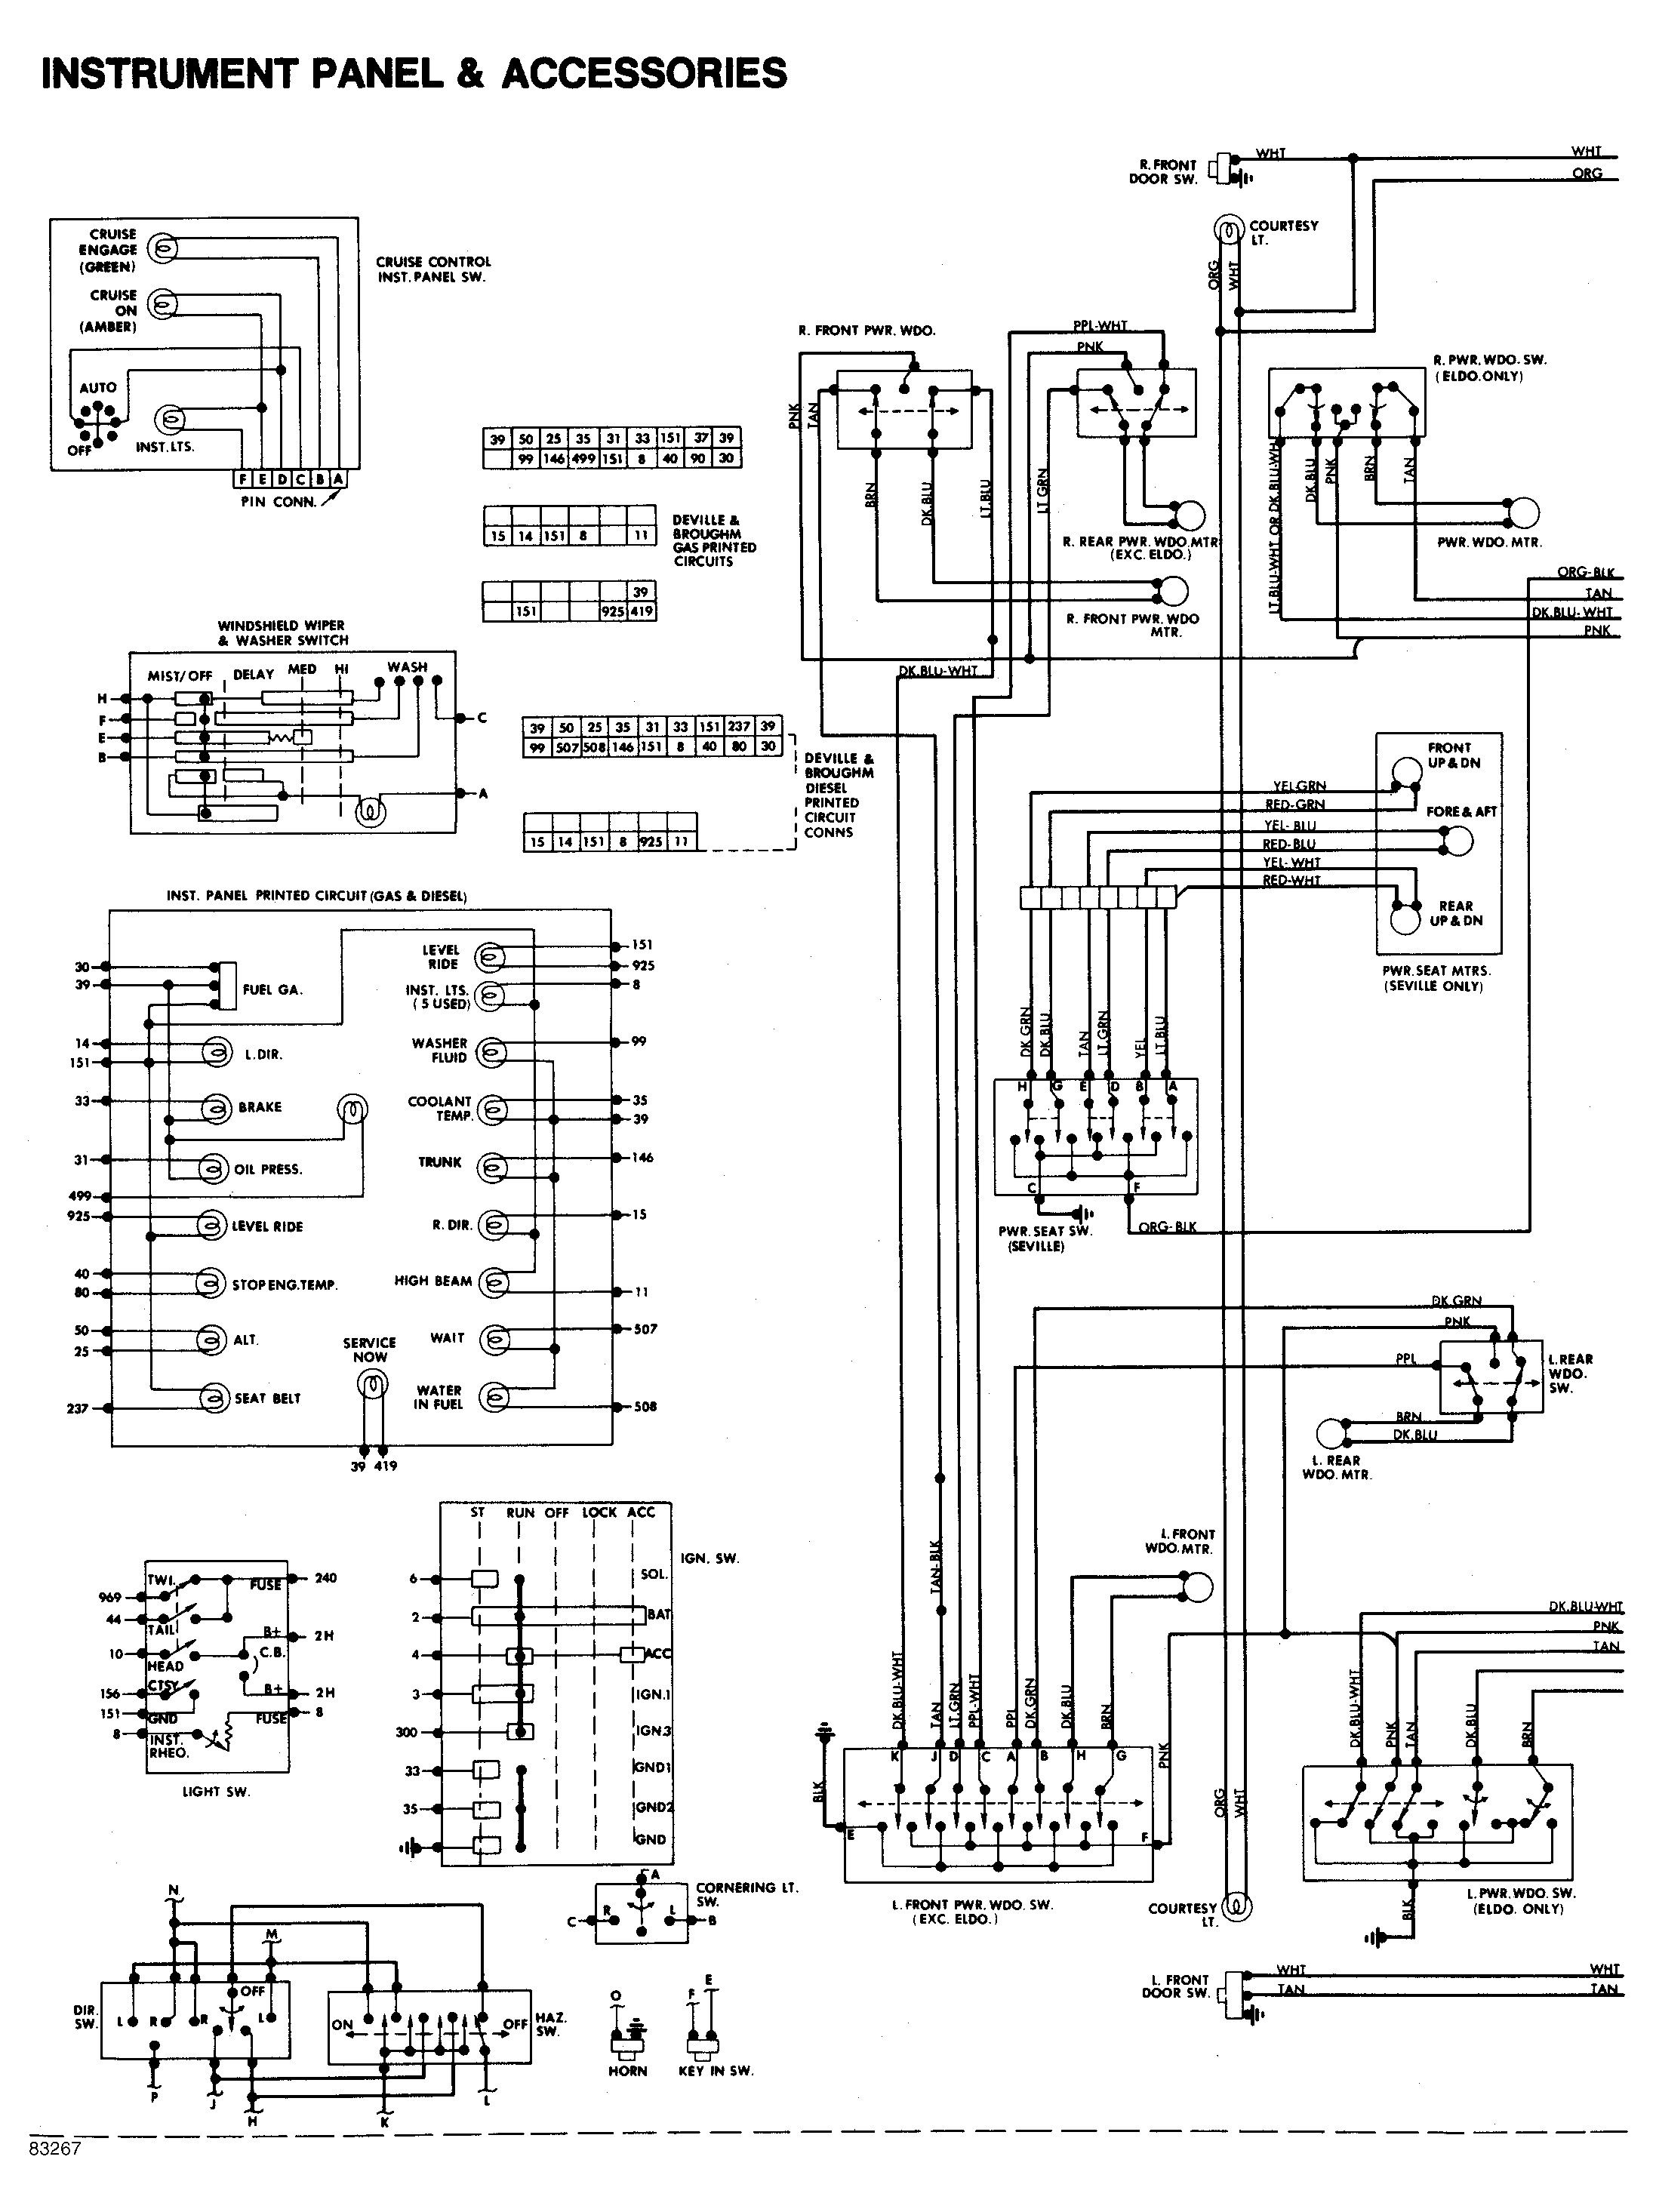 2000 honda accord radio wiring diagram fresh daewoo leganza audio Mazda 6 Radio Wiring Diagram